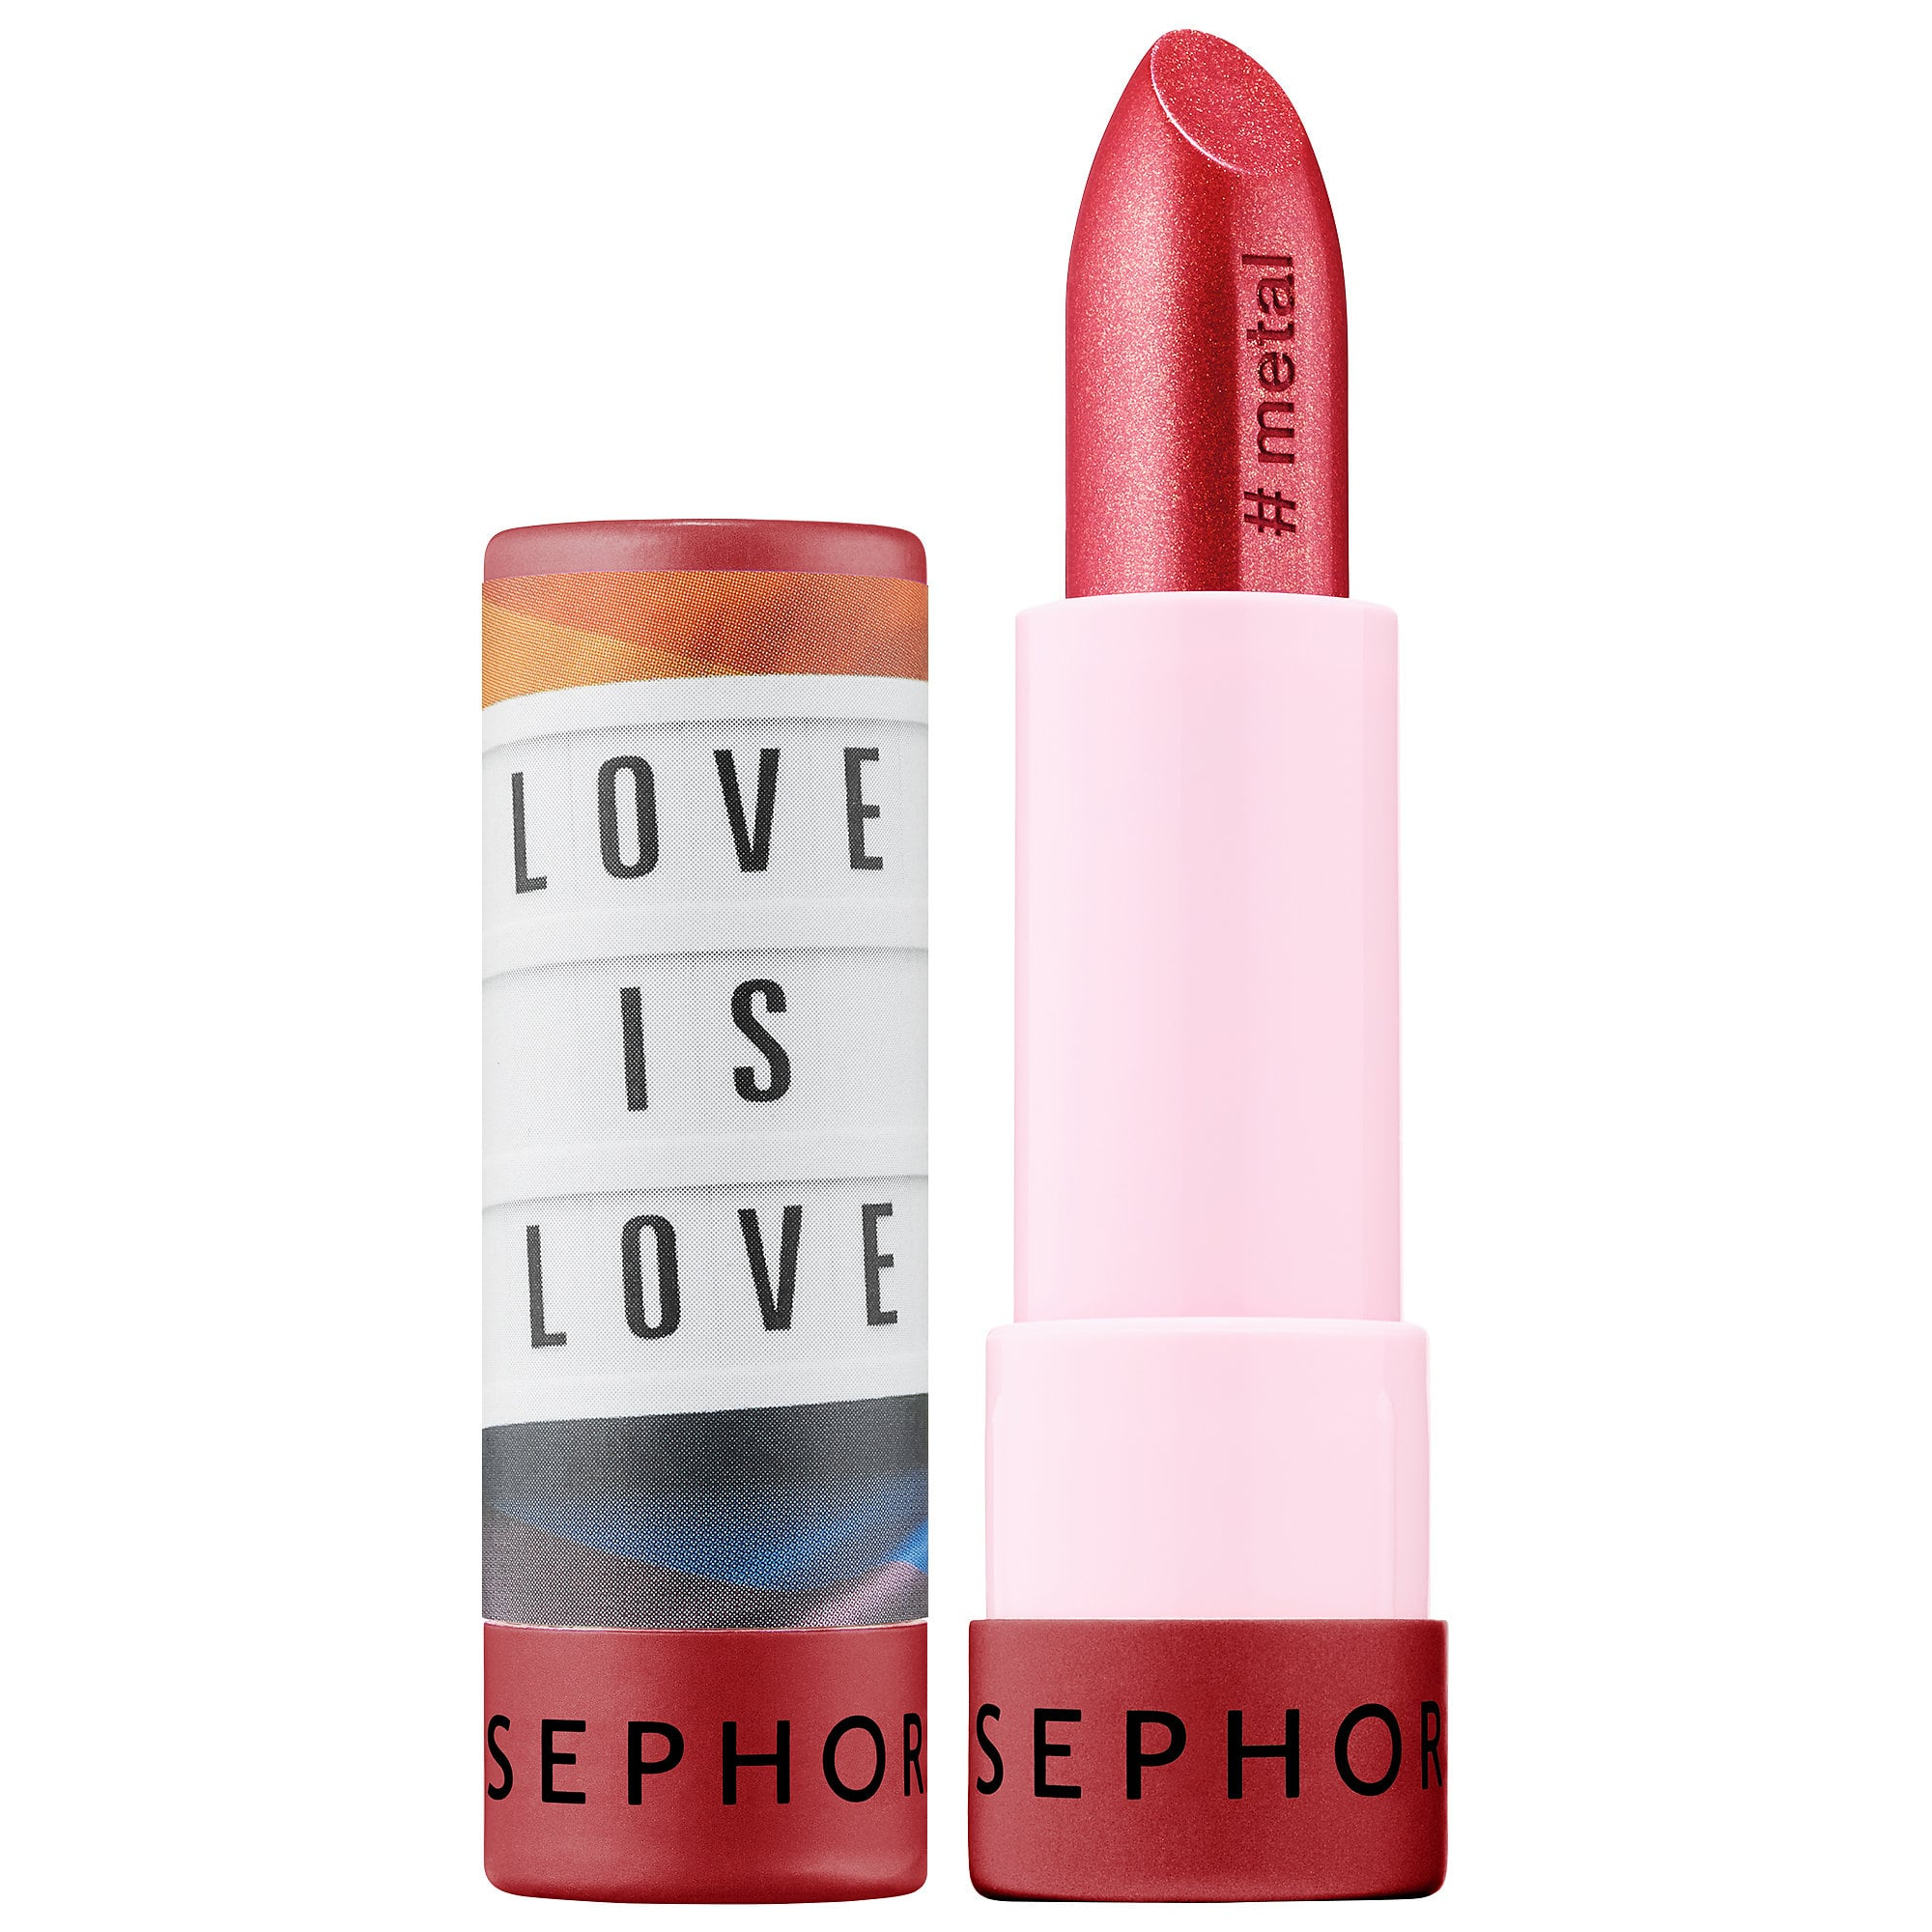 Sephora Pride 2019 - The beauty conglomerate has gone and done it again! Sephora has curated its inaugural Sephora <3's Pride collection of makeup, skincare, and lashes to support LGBT organizations.$1 from every product sold from the collection is donated to charity partners that provide resources and support to LGBT communities across the US. Prices for products range from $8 (Sephora lipstick) to $45 (Anastasia palette).